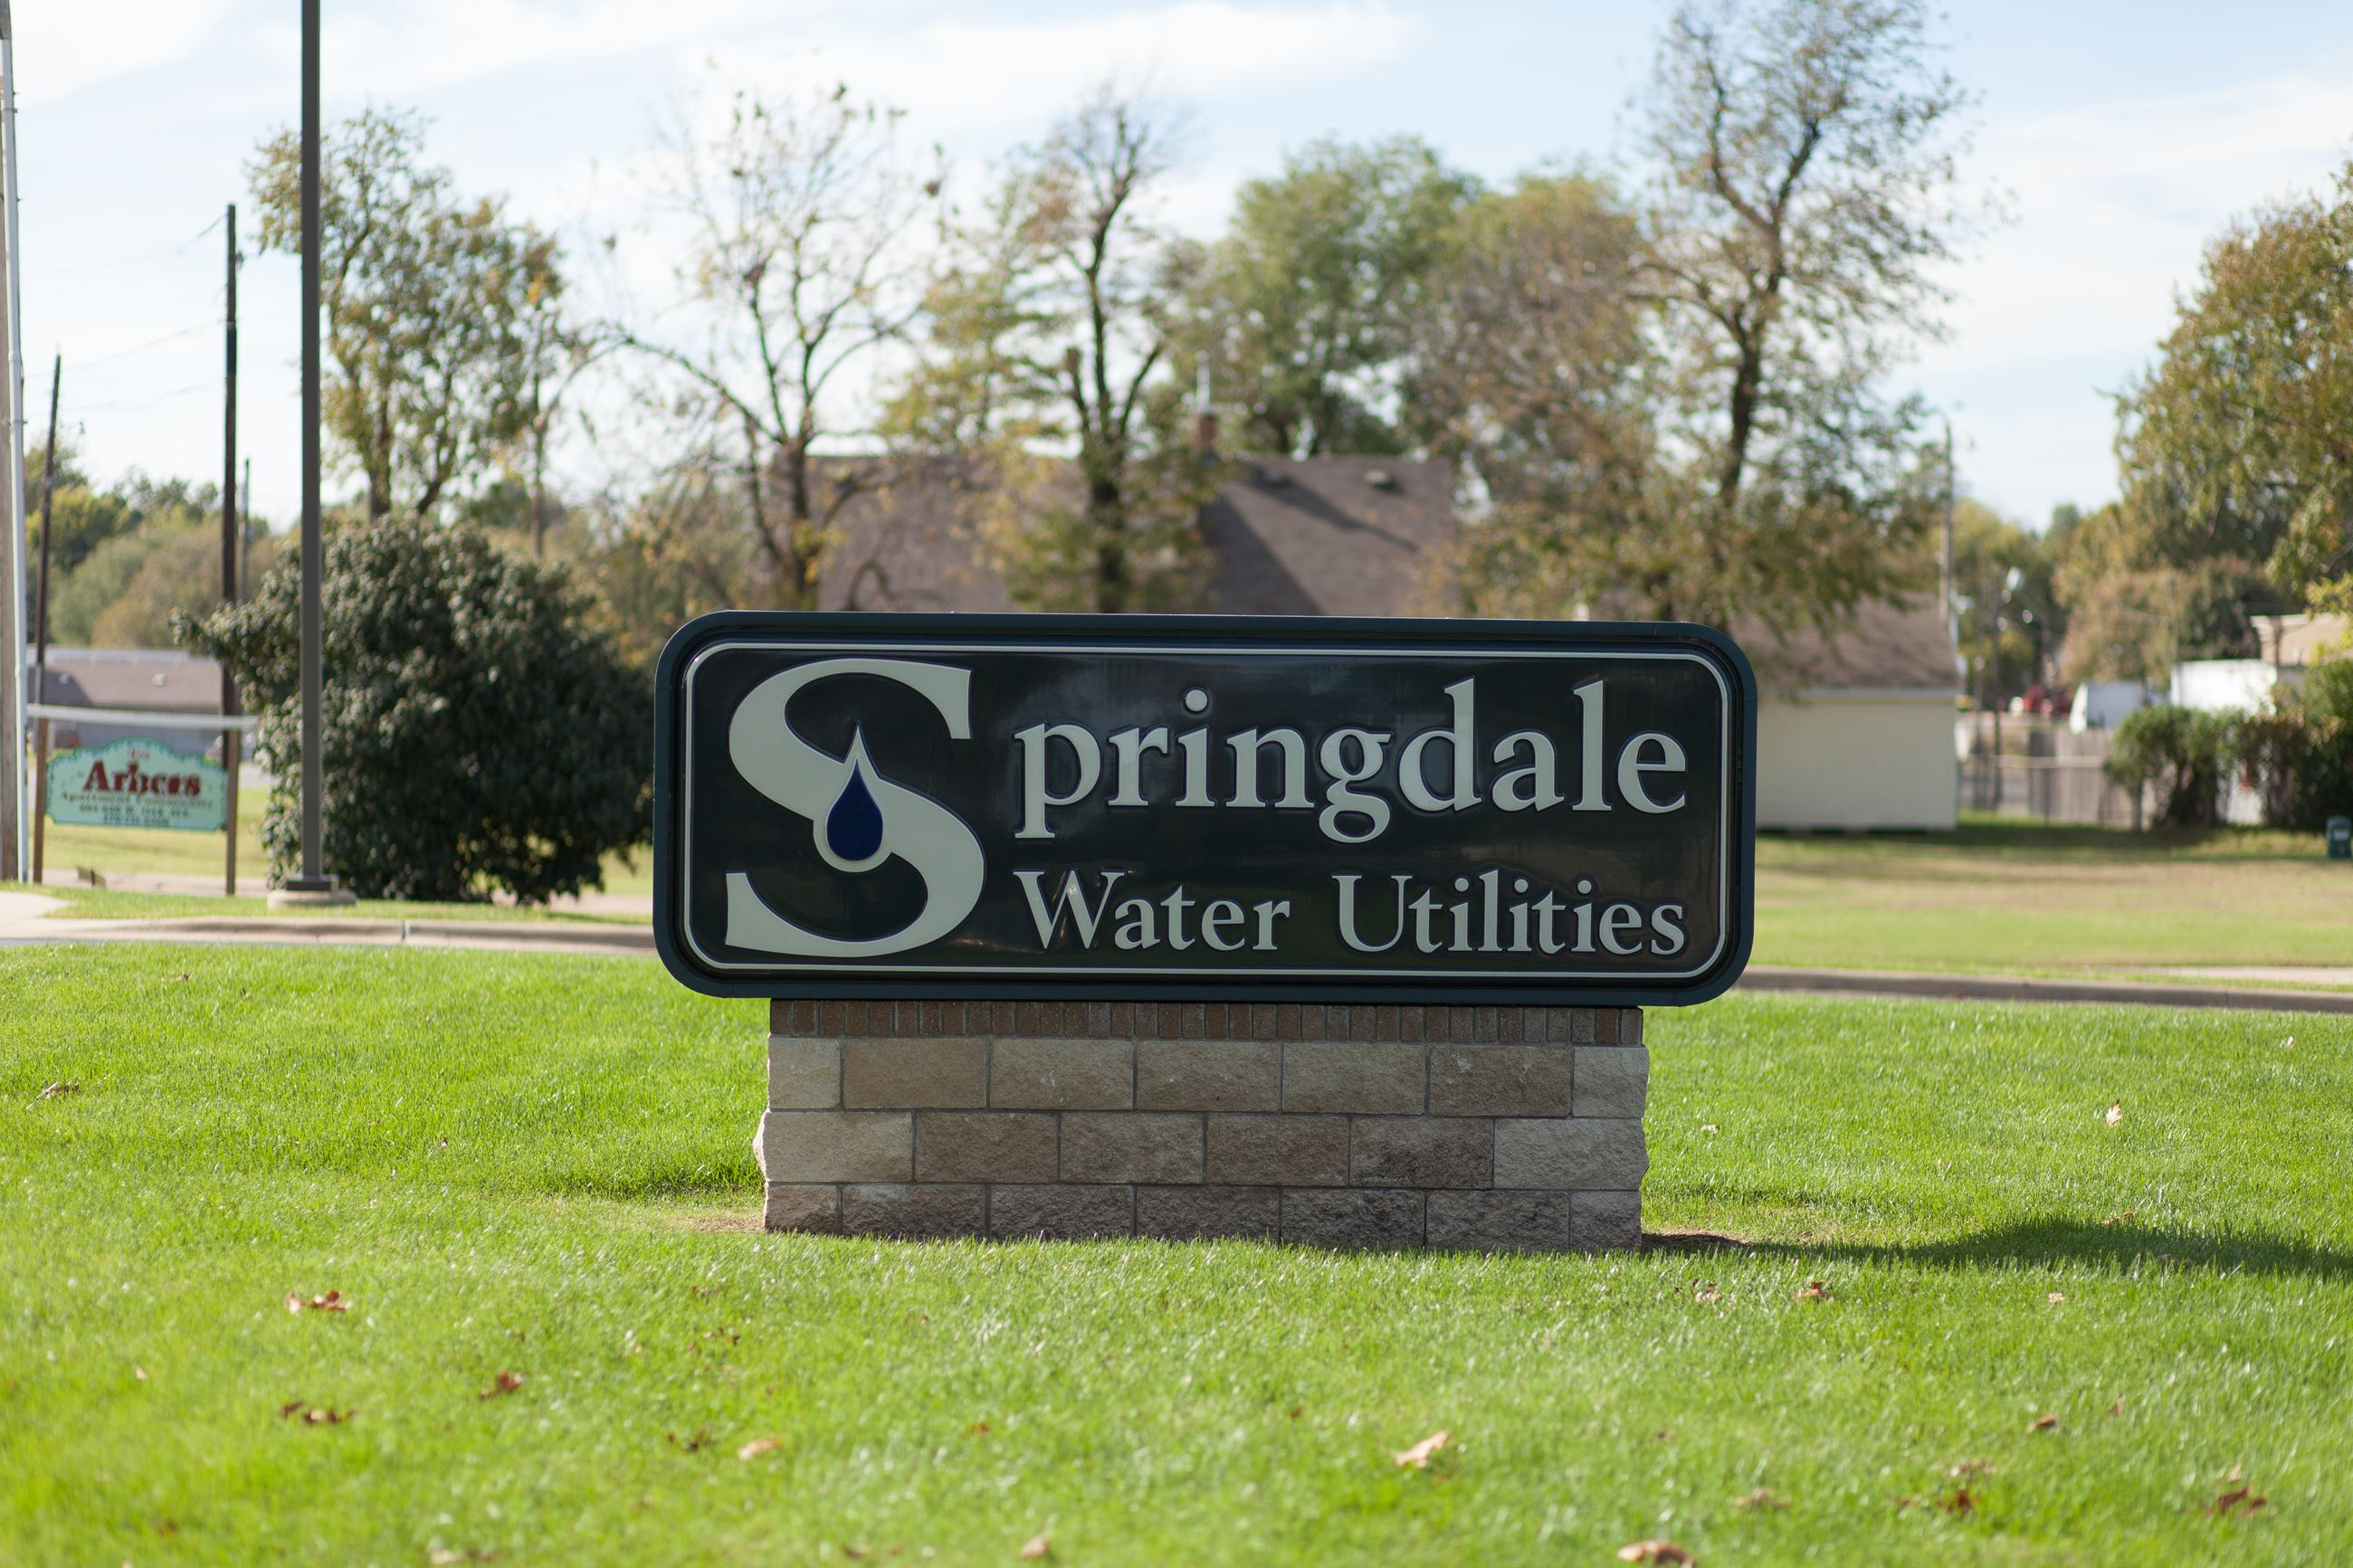 Springdale Water Utilities